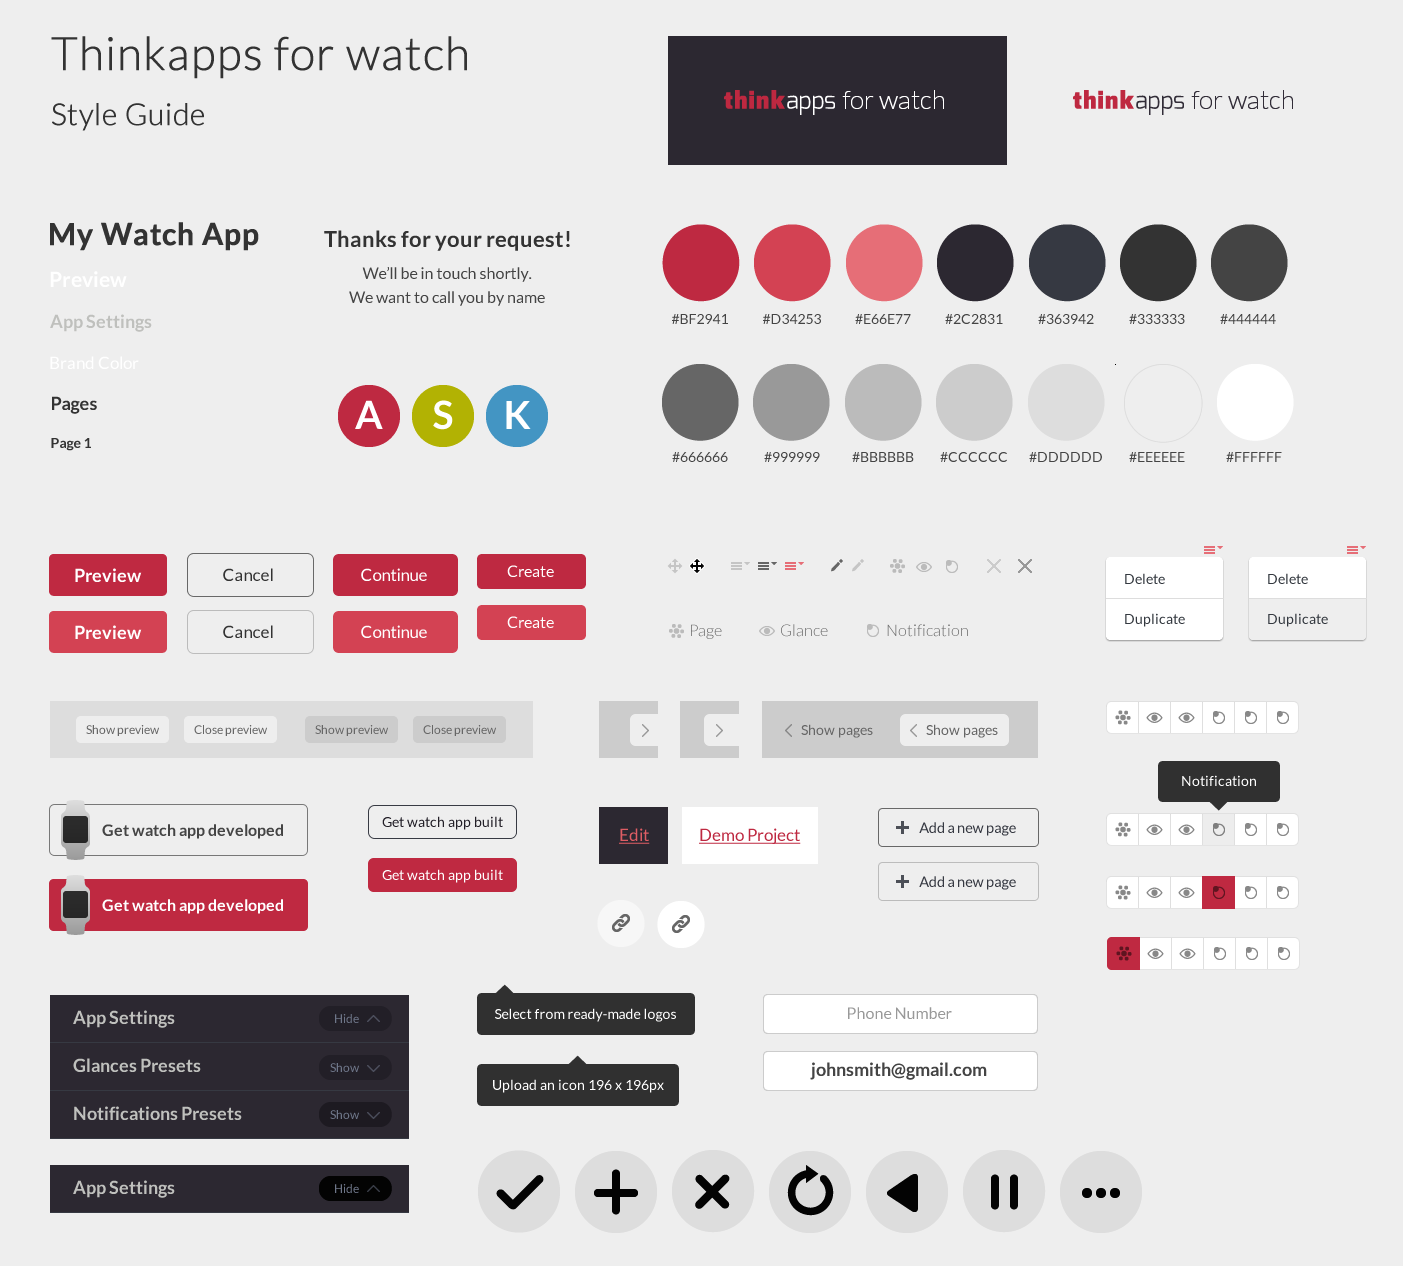 ThinkApps for Watch style guide